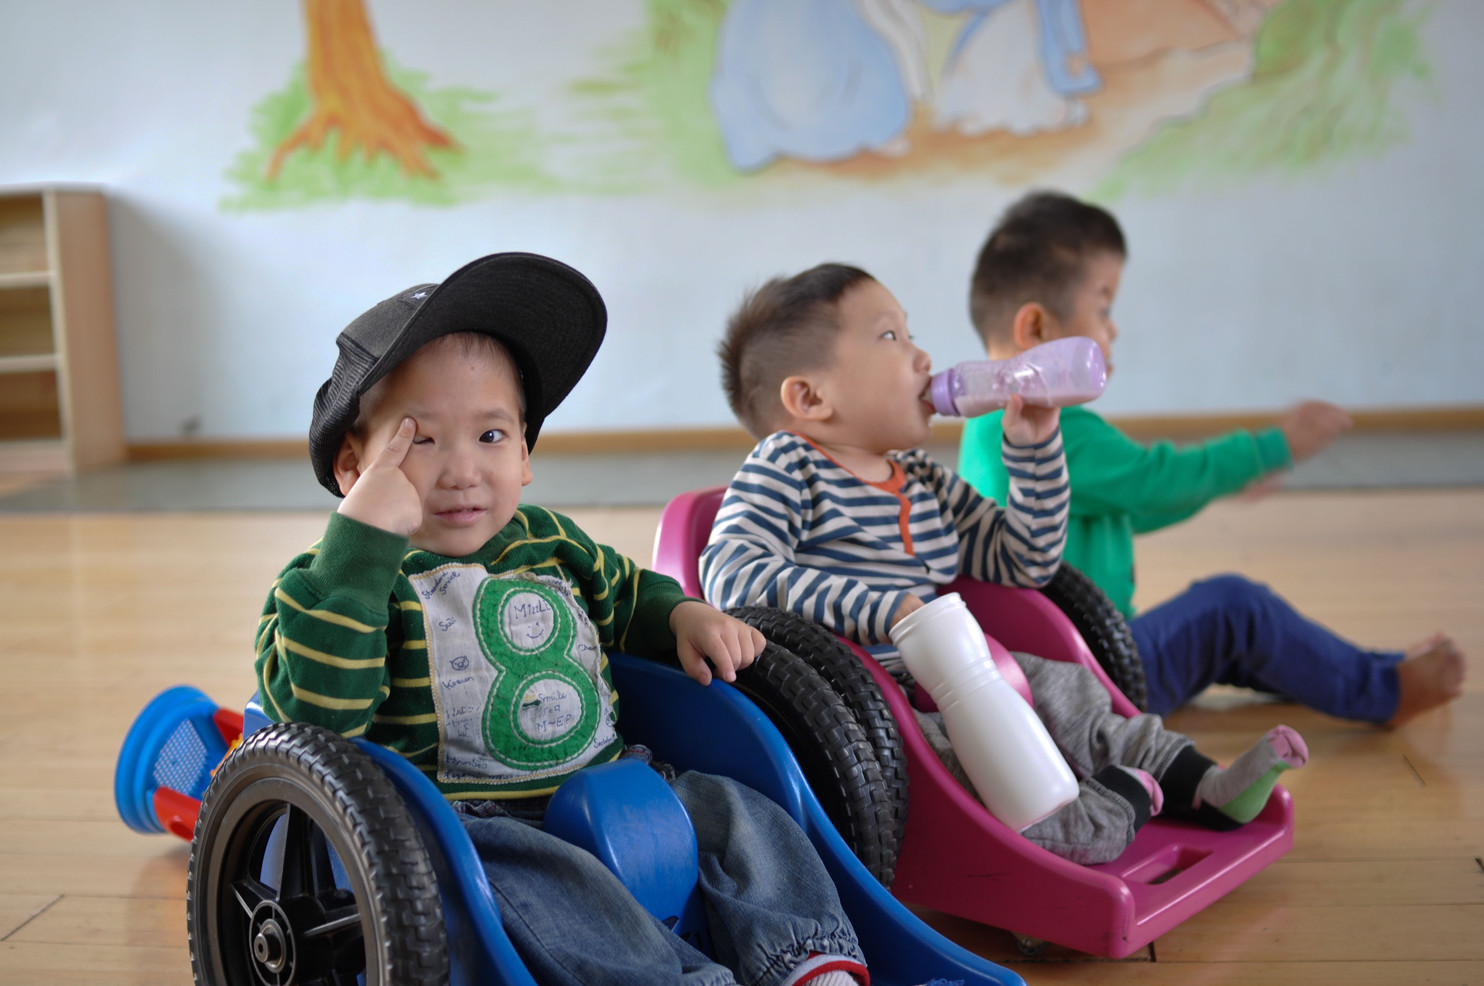 Children with spina bifida and club foot who are unable to walk ride in miniature wheelchairs.